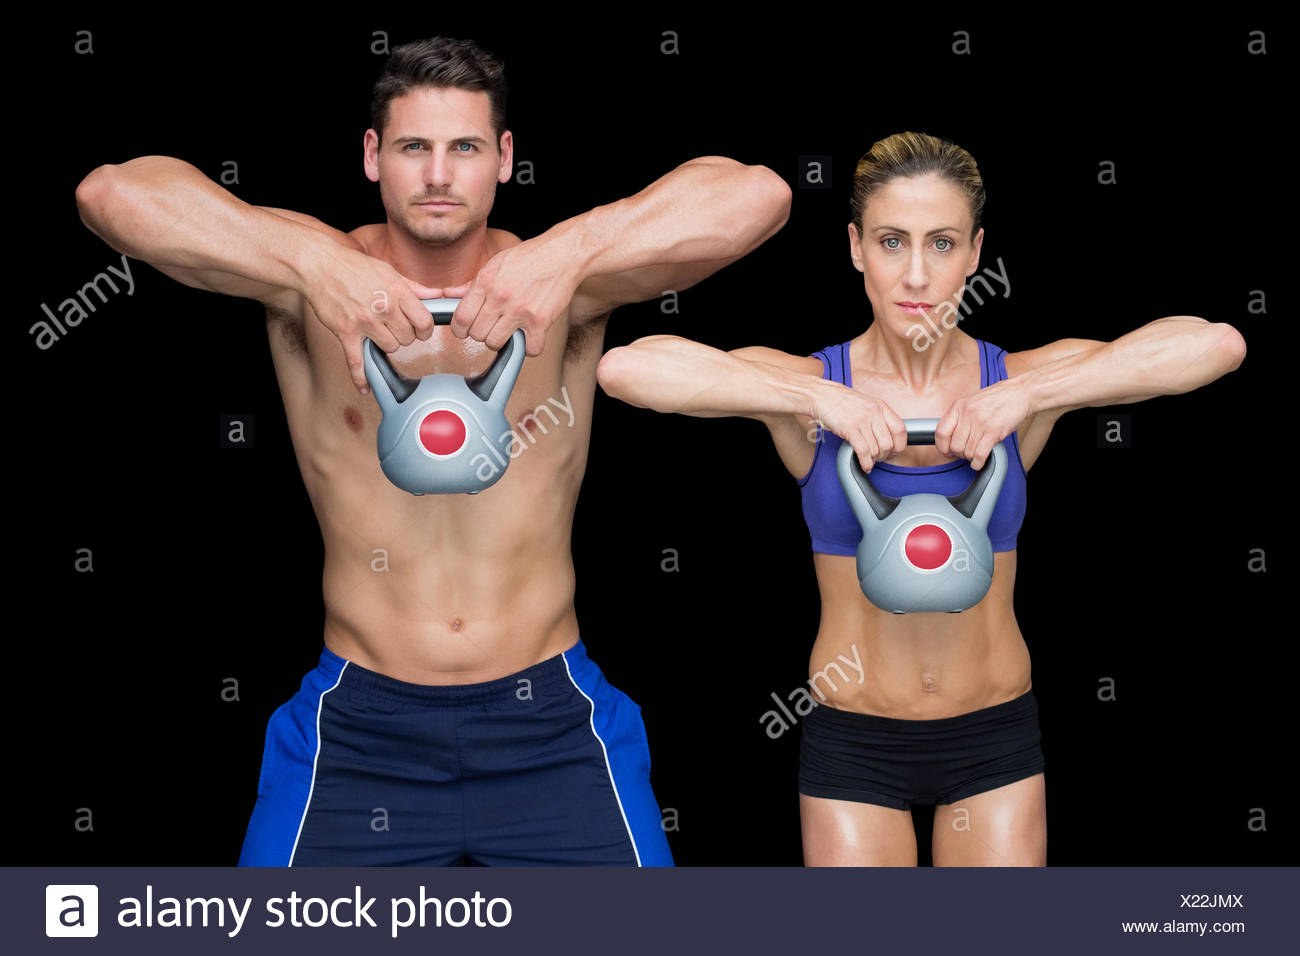 Crossfit couple posing with kettlebells - Stock Image